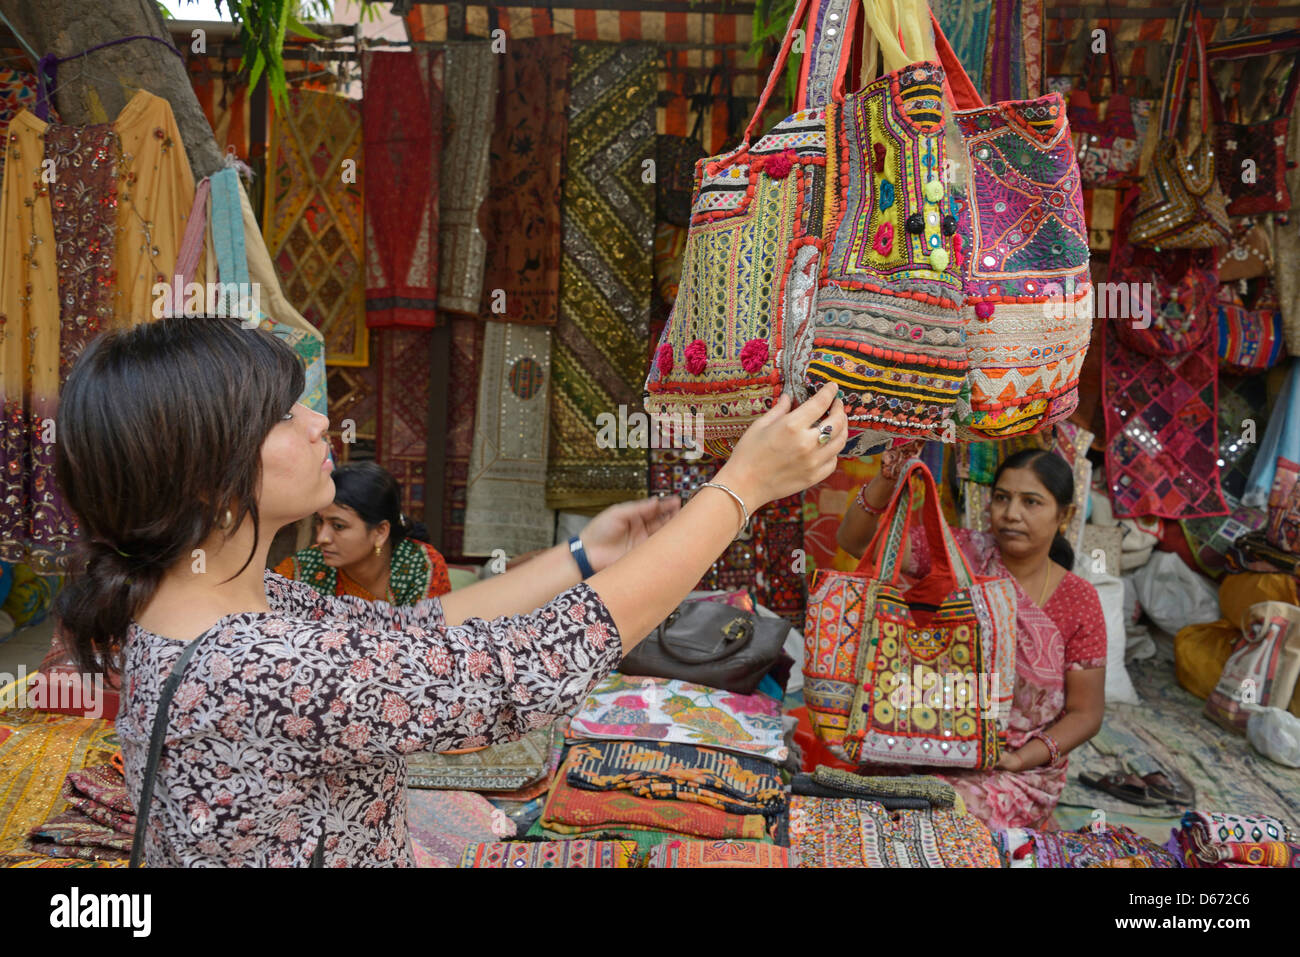 A young girl admiring a hand-made should bag at a side street market in New Delhi, India - Stock Image